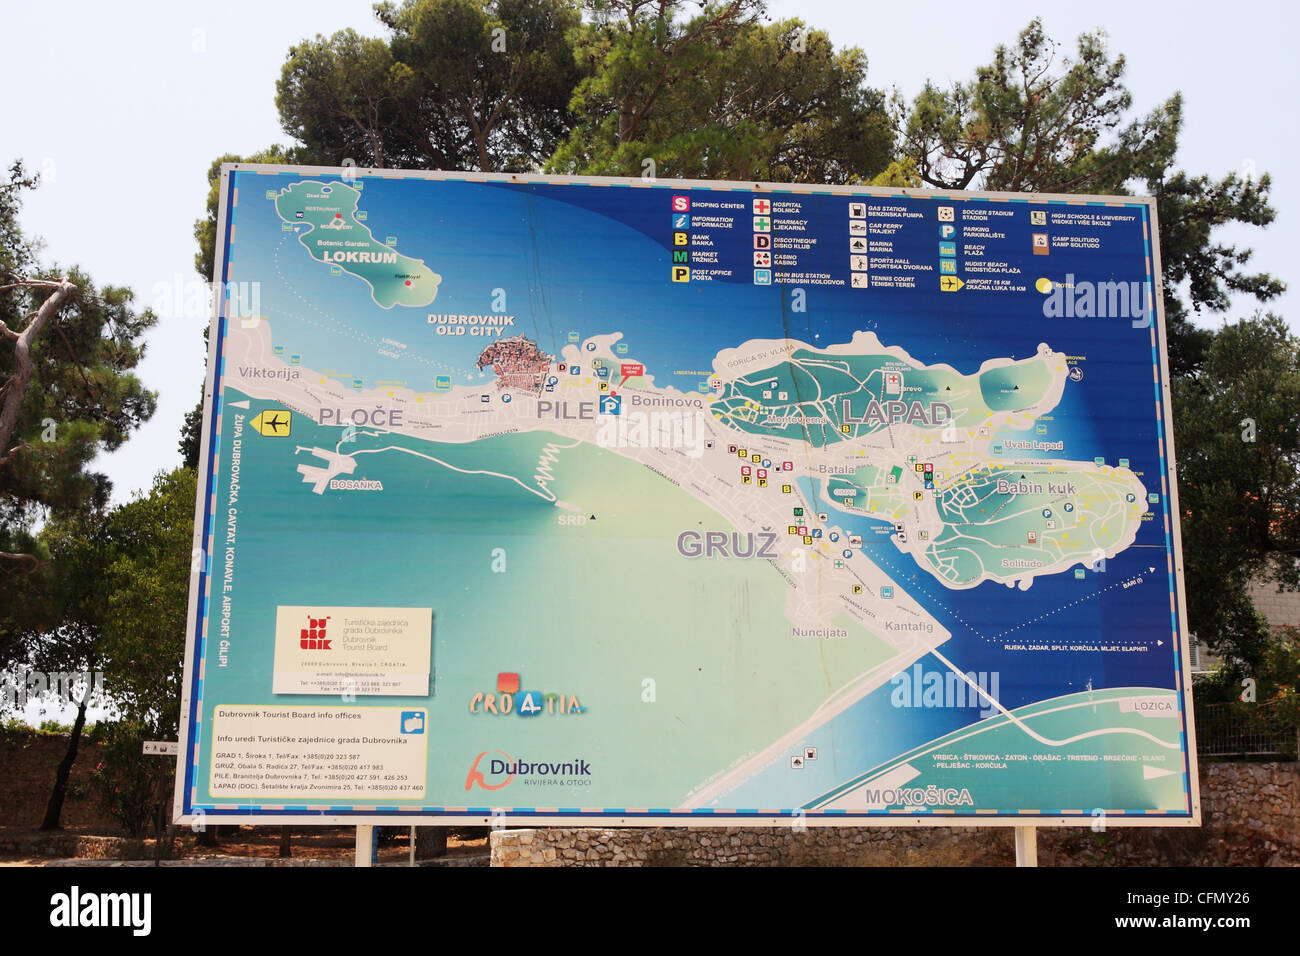 Map of dubrovnik croatia stock photo 44100846 alamy map of dubrovnik croatia gumiabroncs Gallery